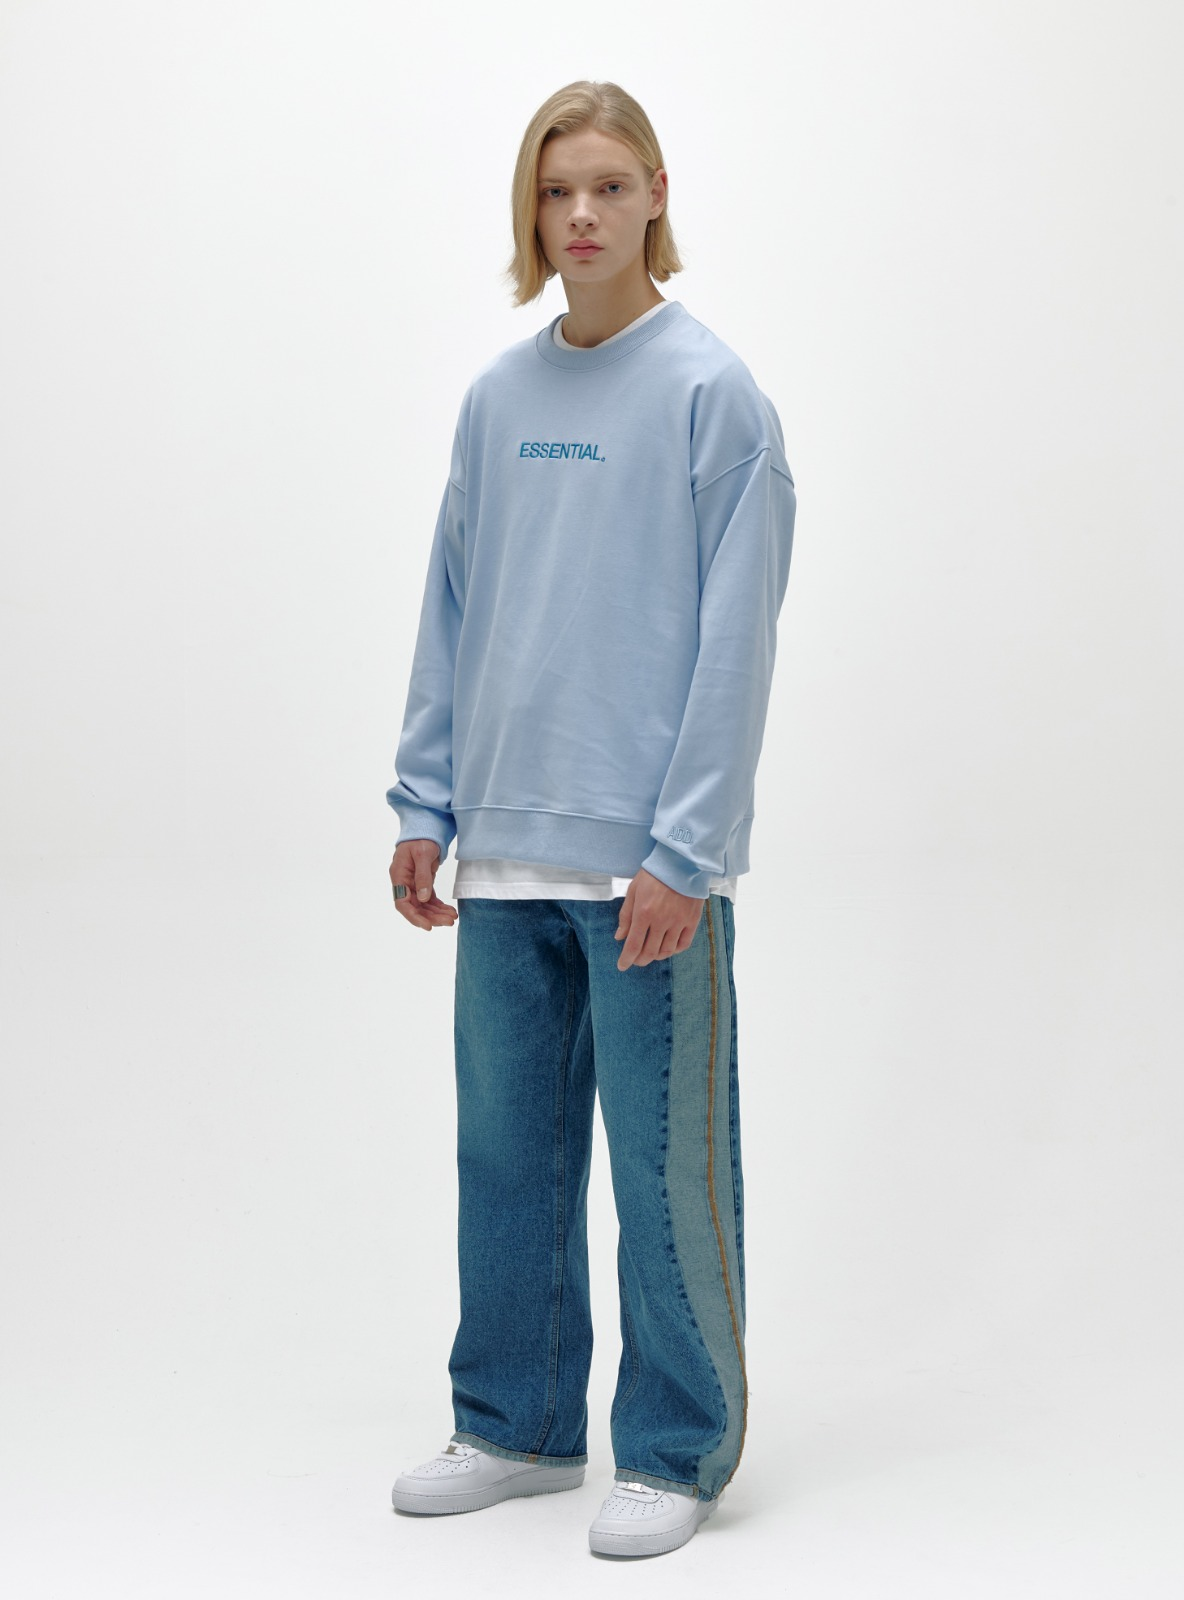 ESSENTIAL LOGO SWEATSHIRT POWDER BLUE